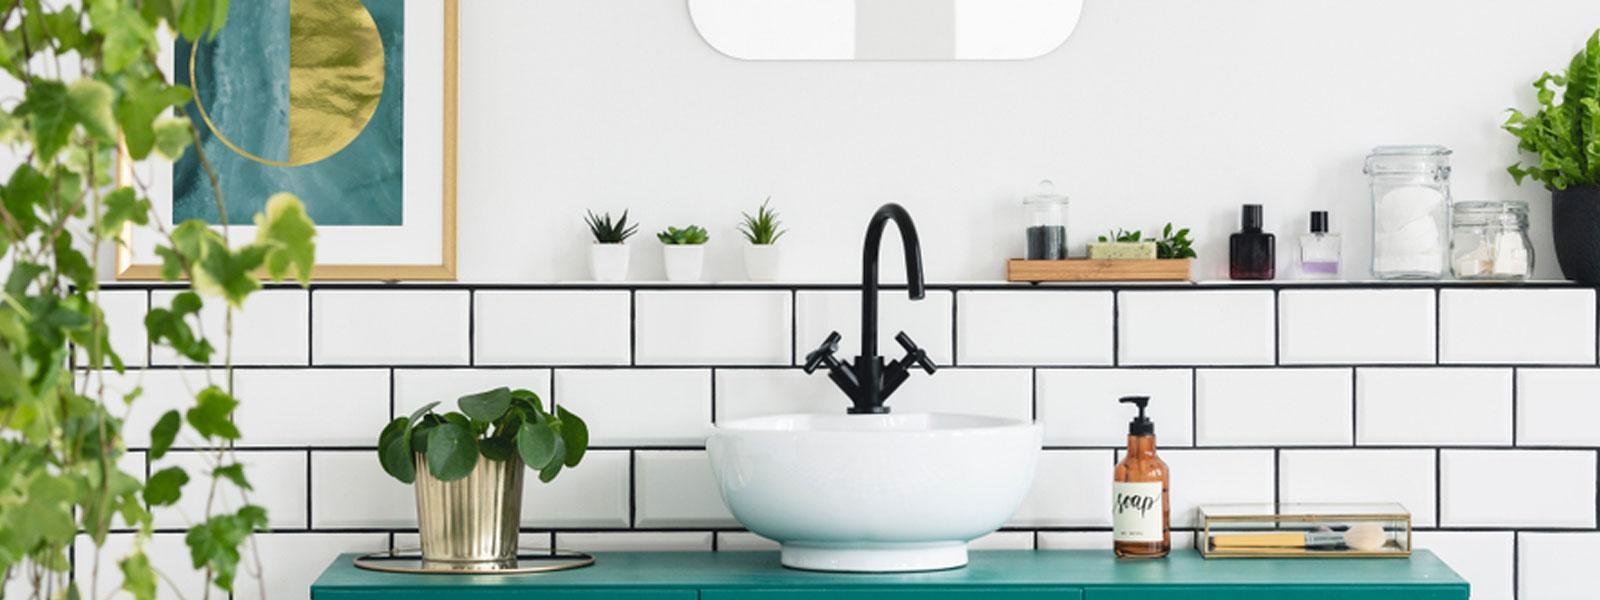 White Bathroom Market Sink